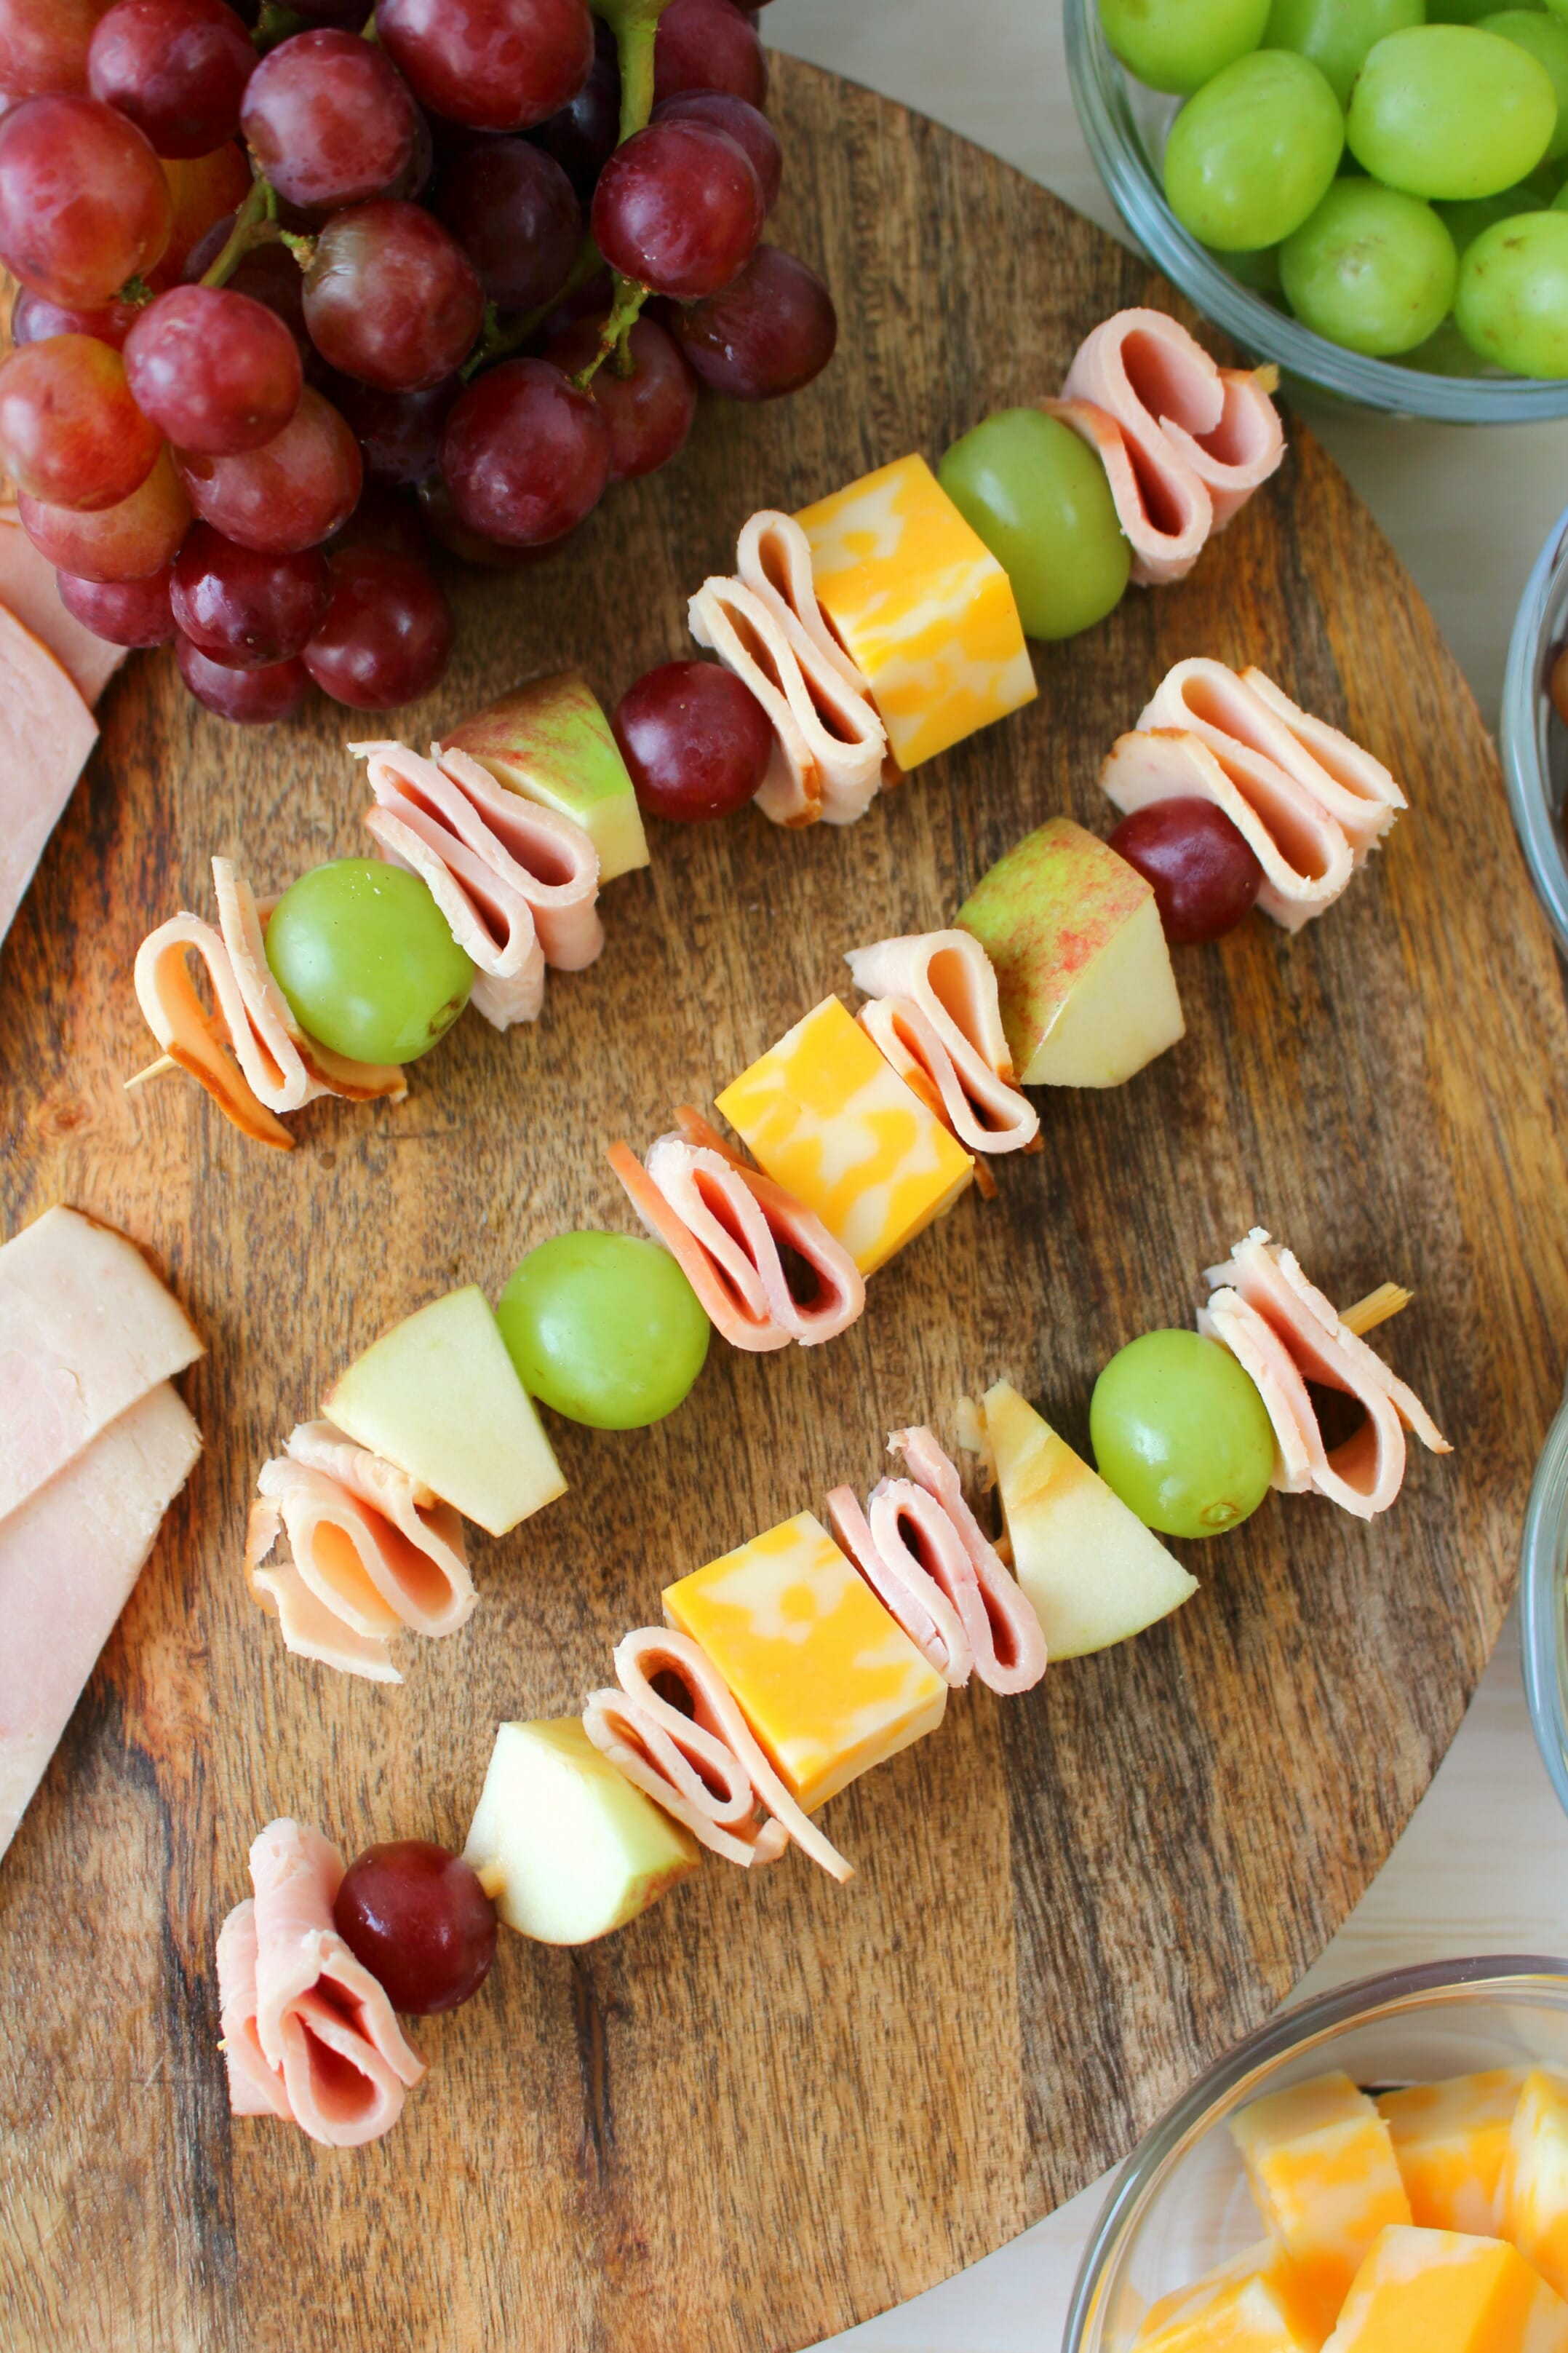 Looking for something new to pack for school lunches? These fun and easy Lunchbox Turkey & Ham Skewers will have your kids jumping for joy at lunch time! Loaded with sliced turkey, ham, fruit and cheese, these will be your kids new lunchbox favorite!